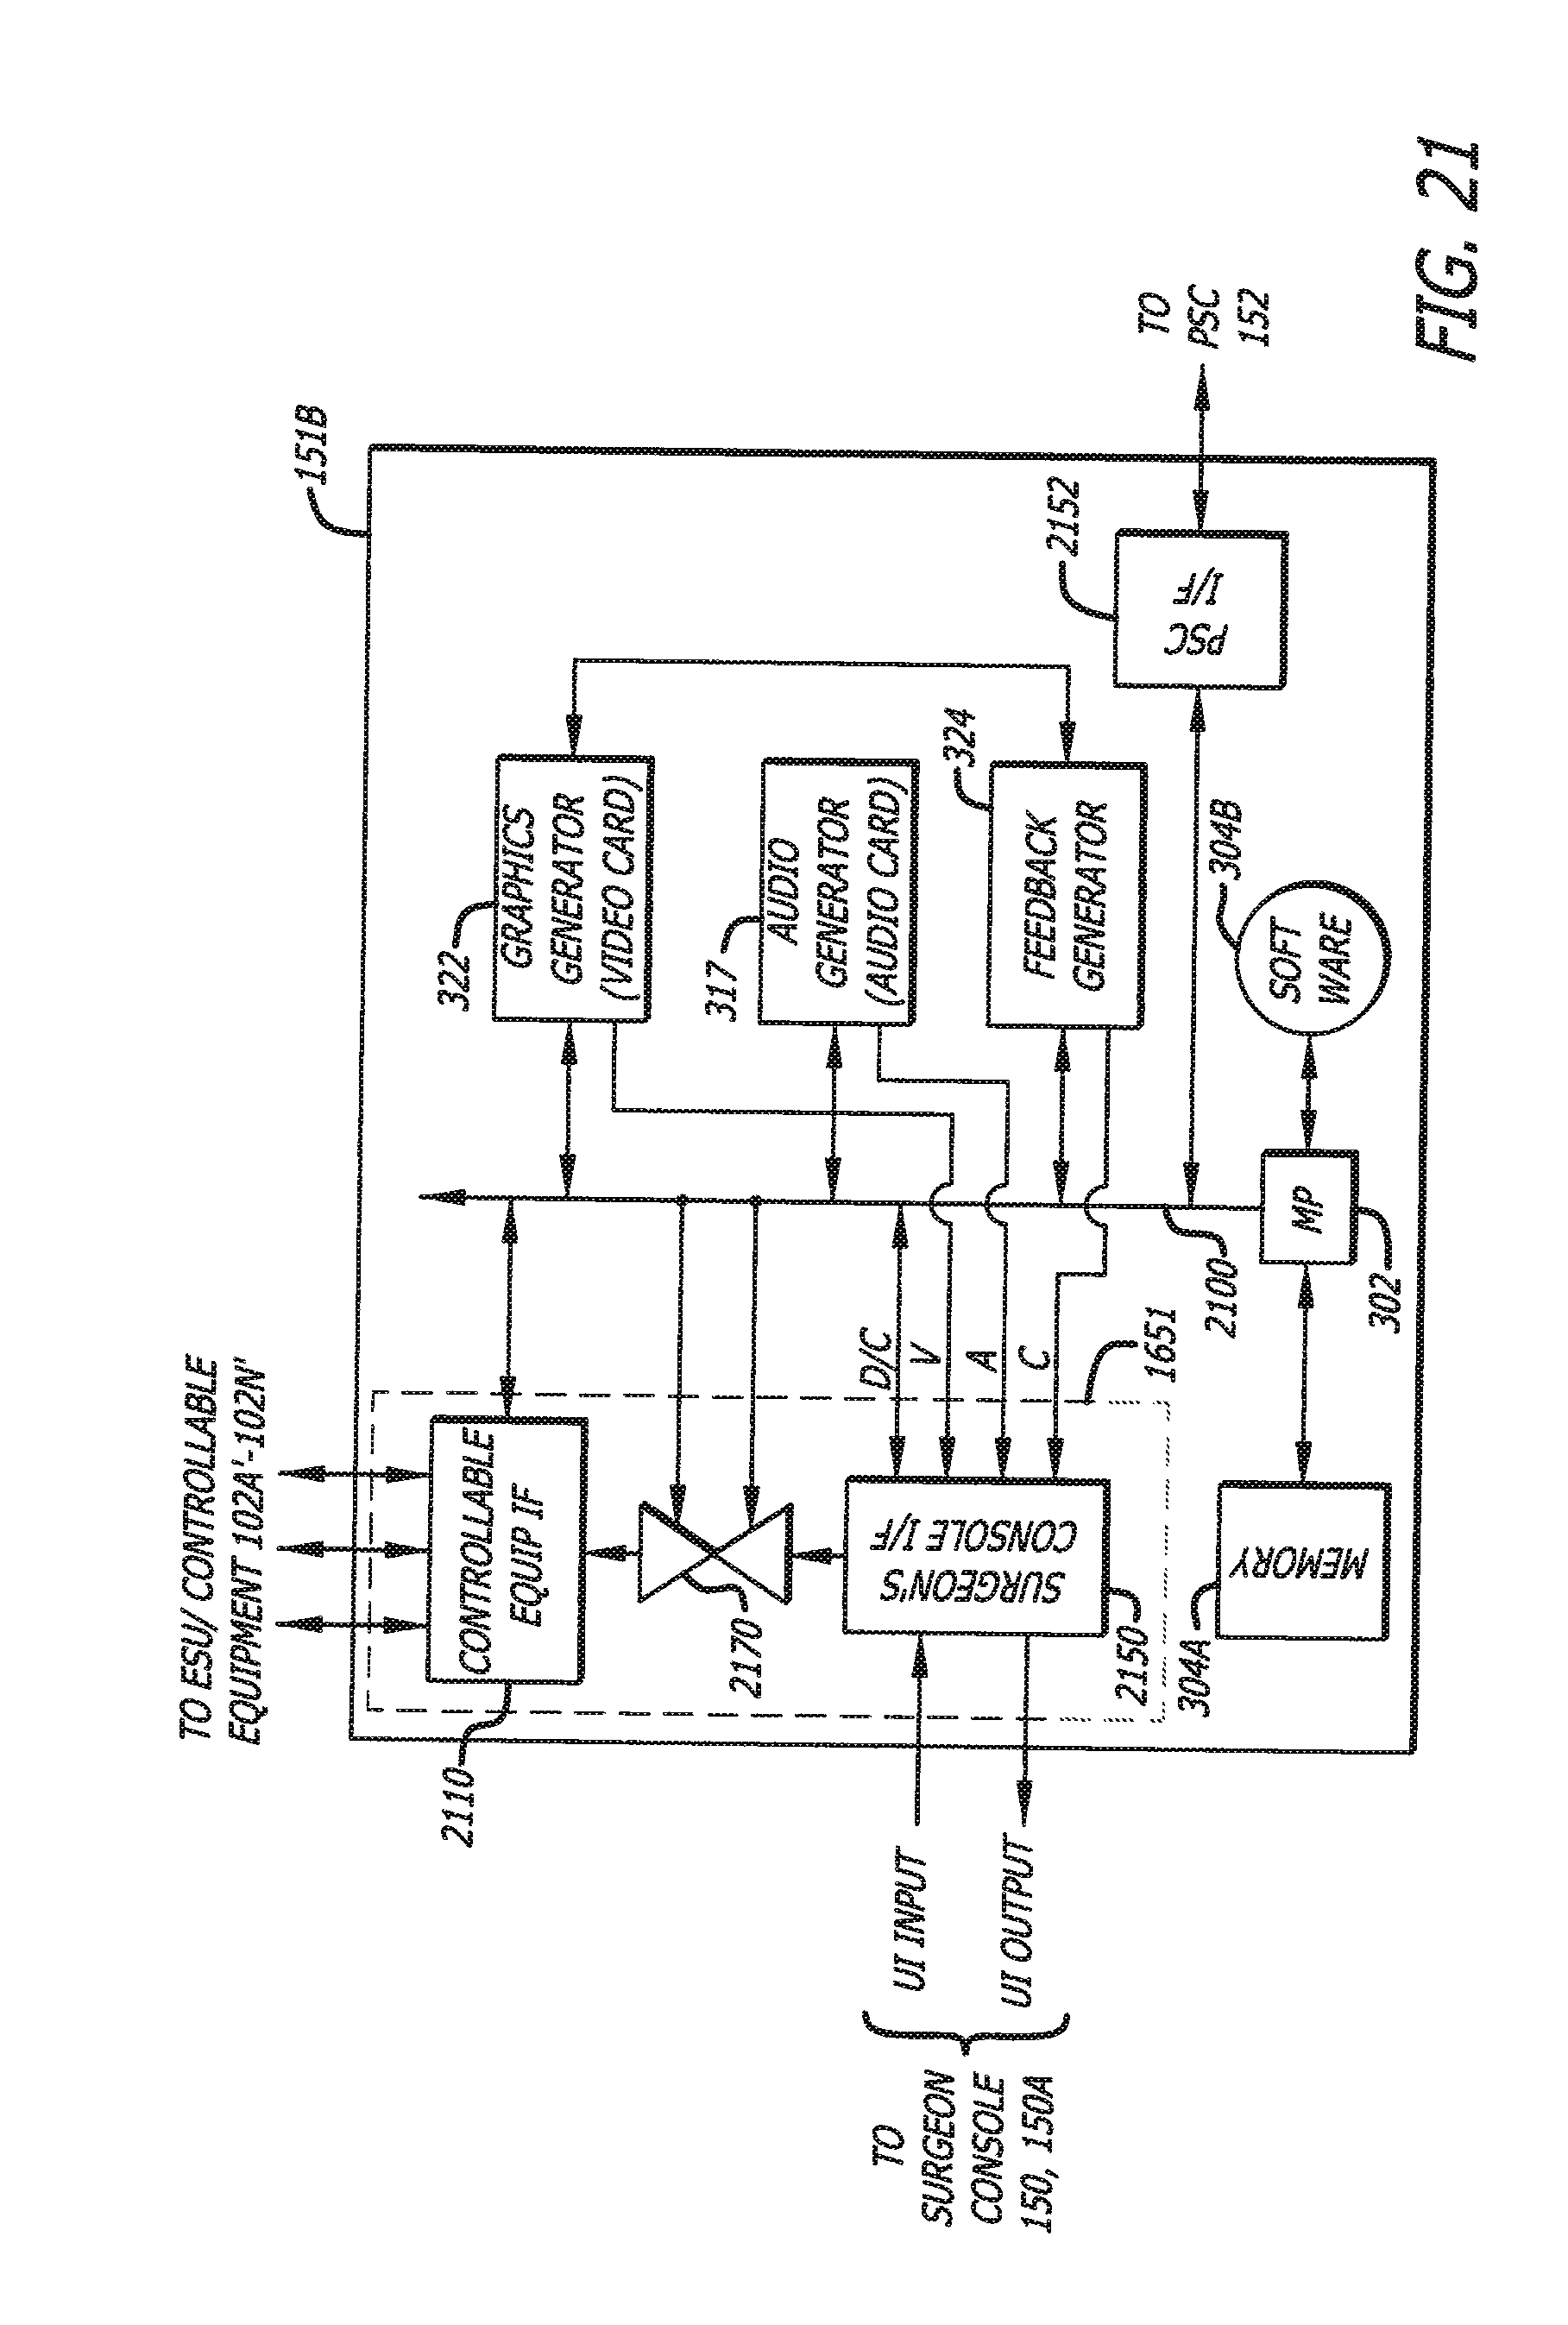 gast model moa p129 hb wiring diagram   37 wiring diagram images